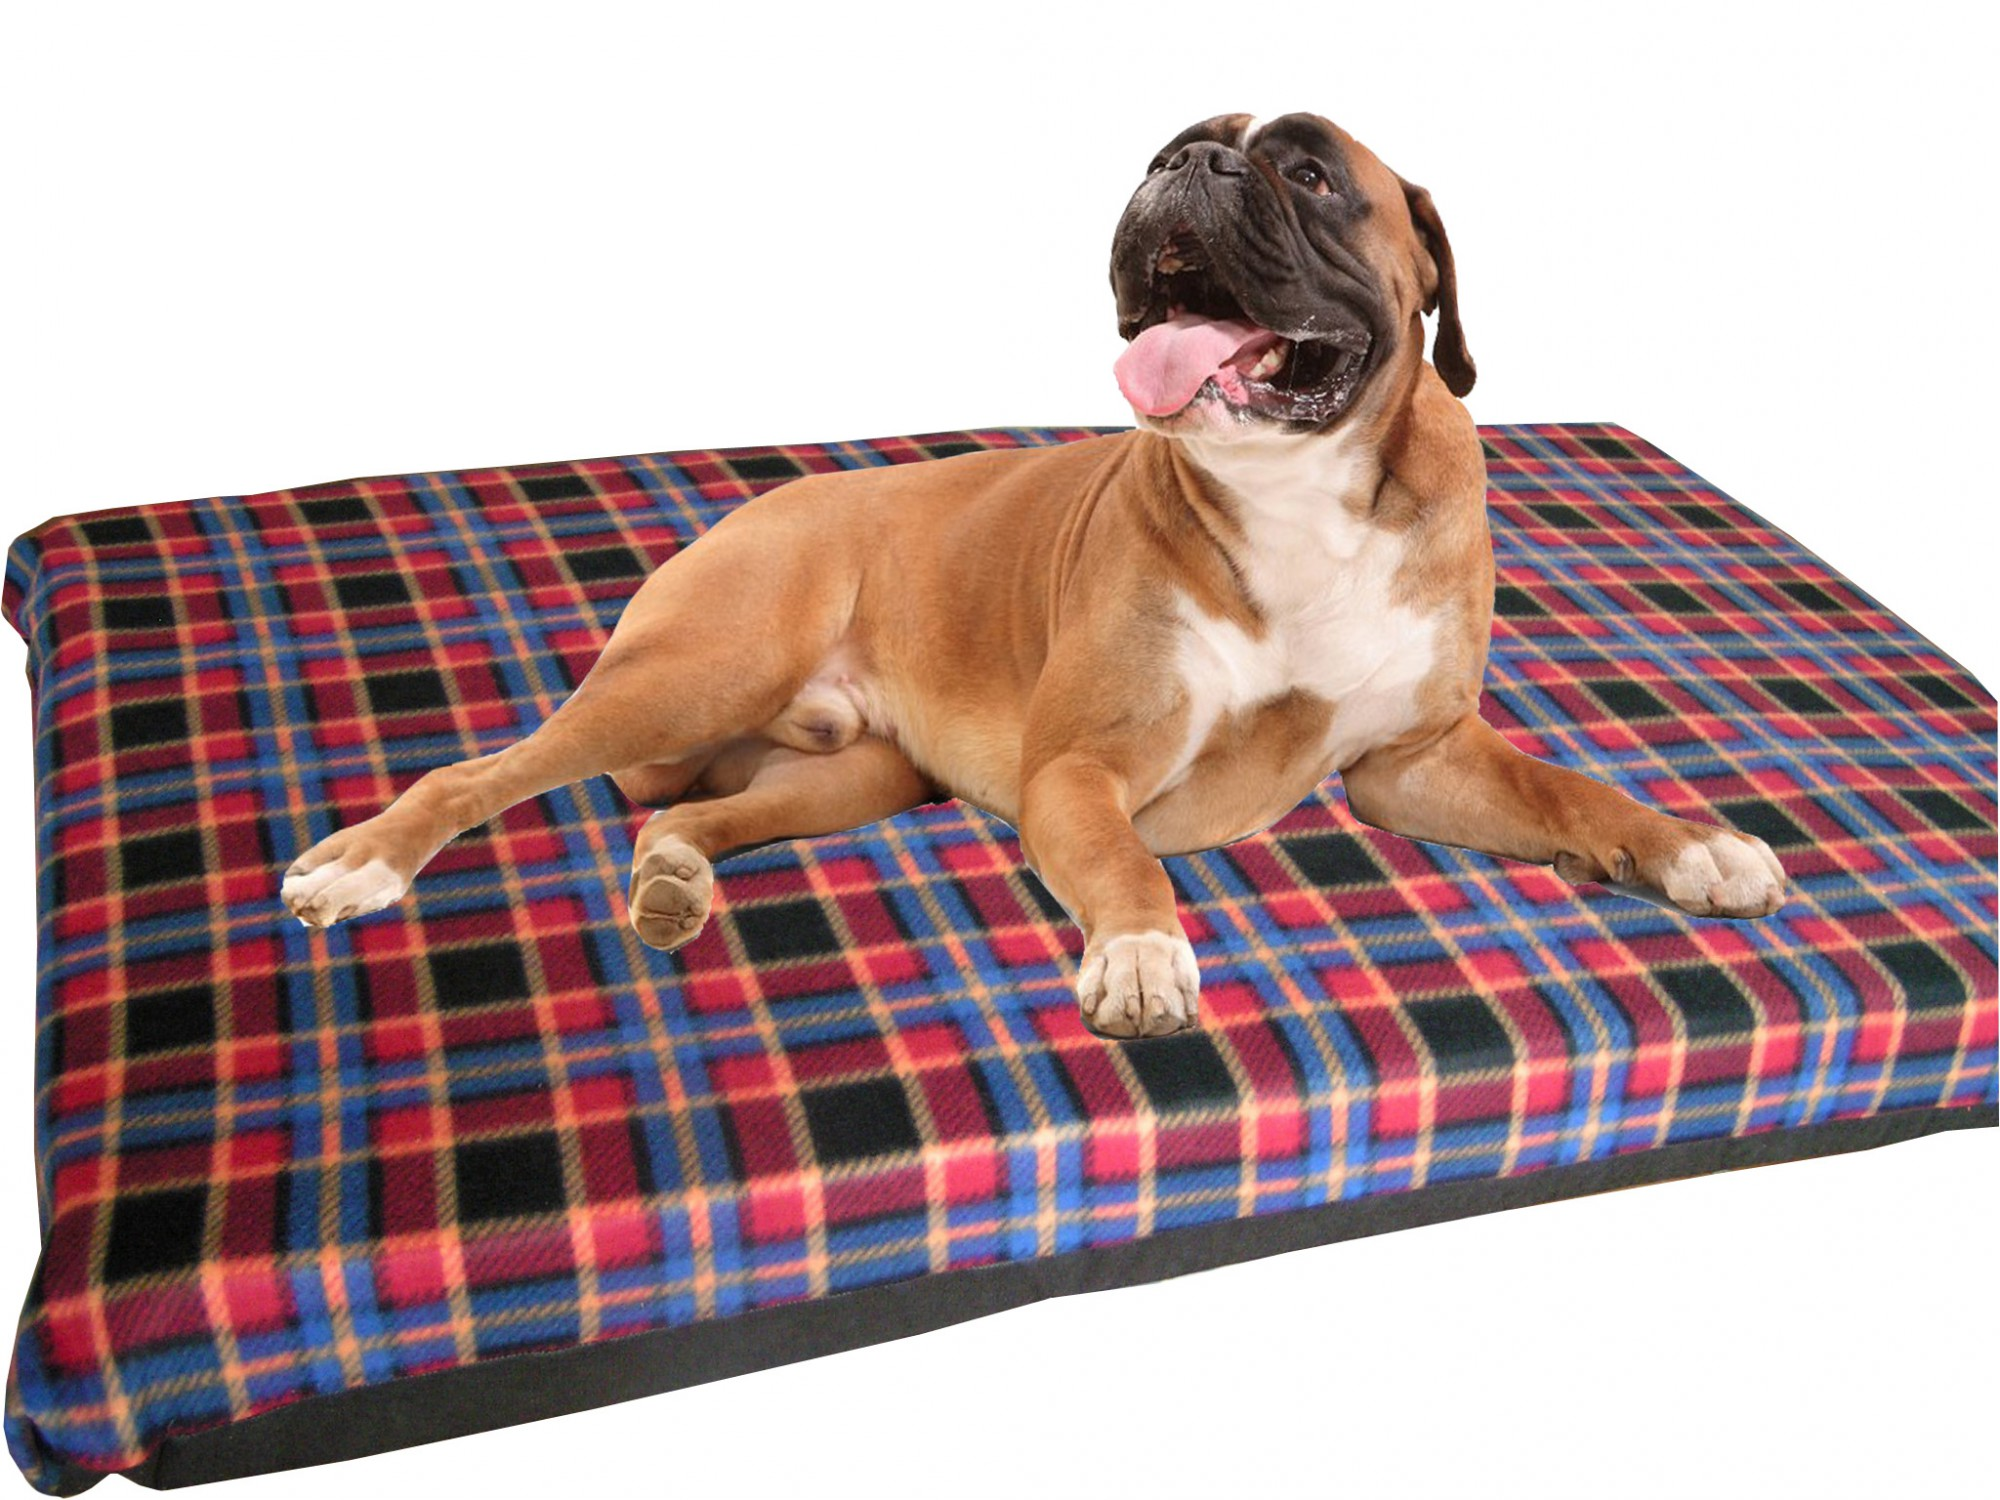 of the pin choosing labs your breed breeds for and large extra bed best dog dogs big other beds